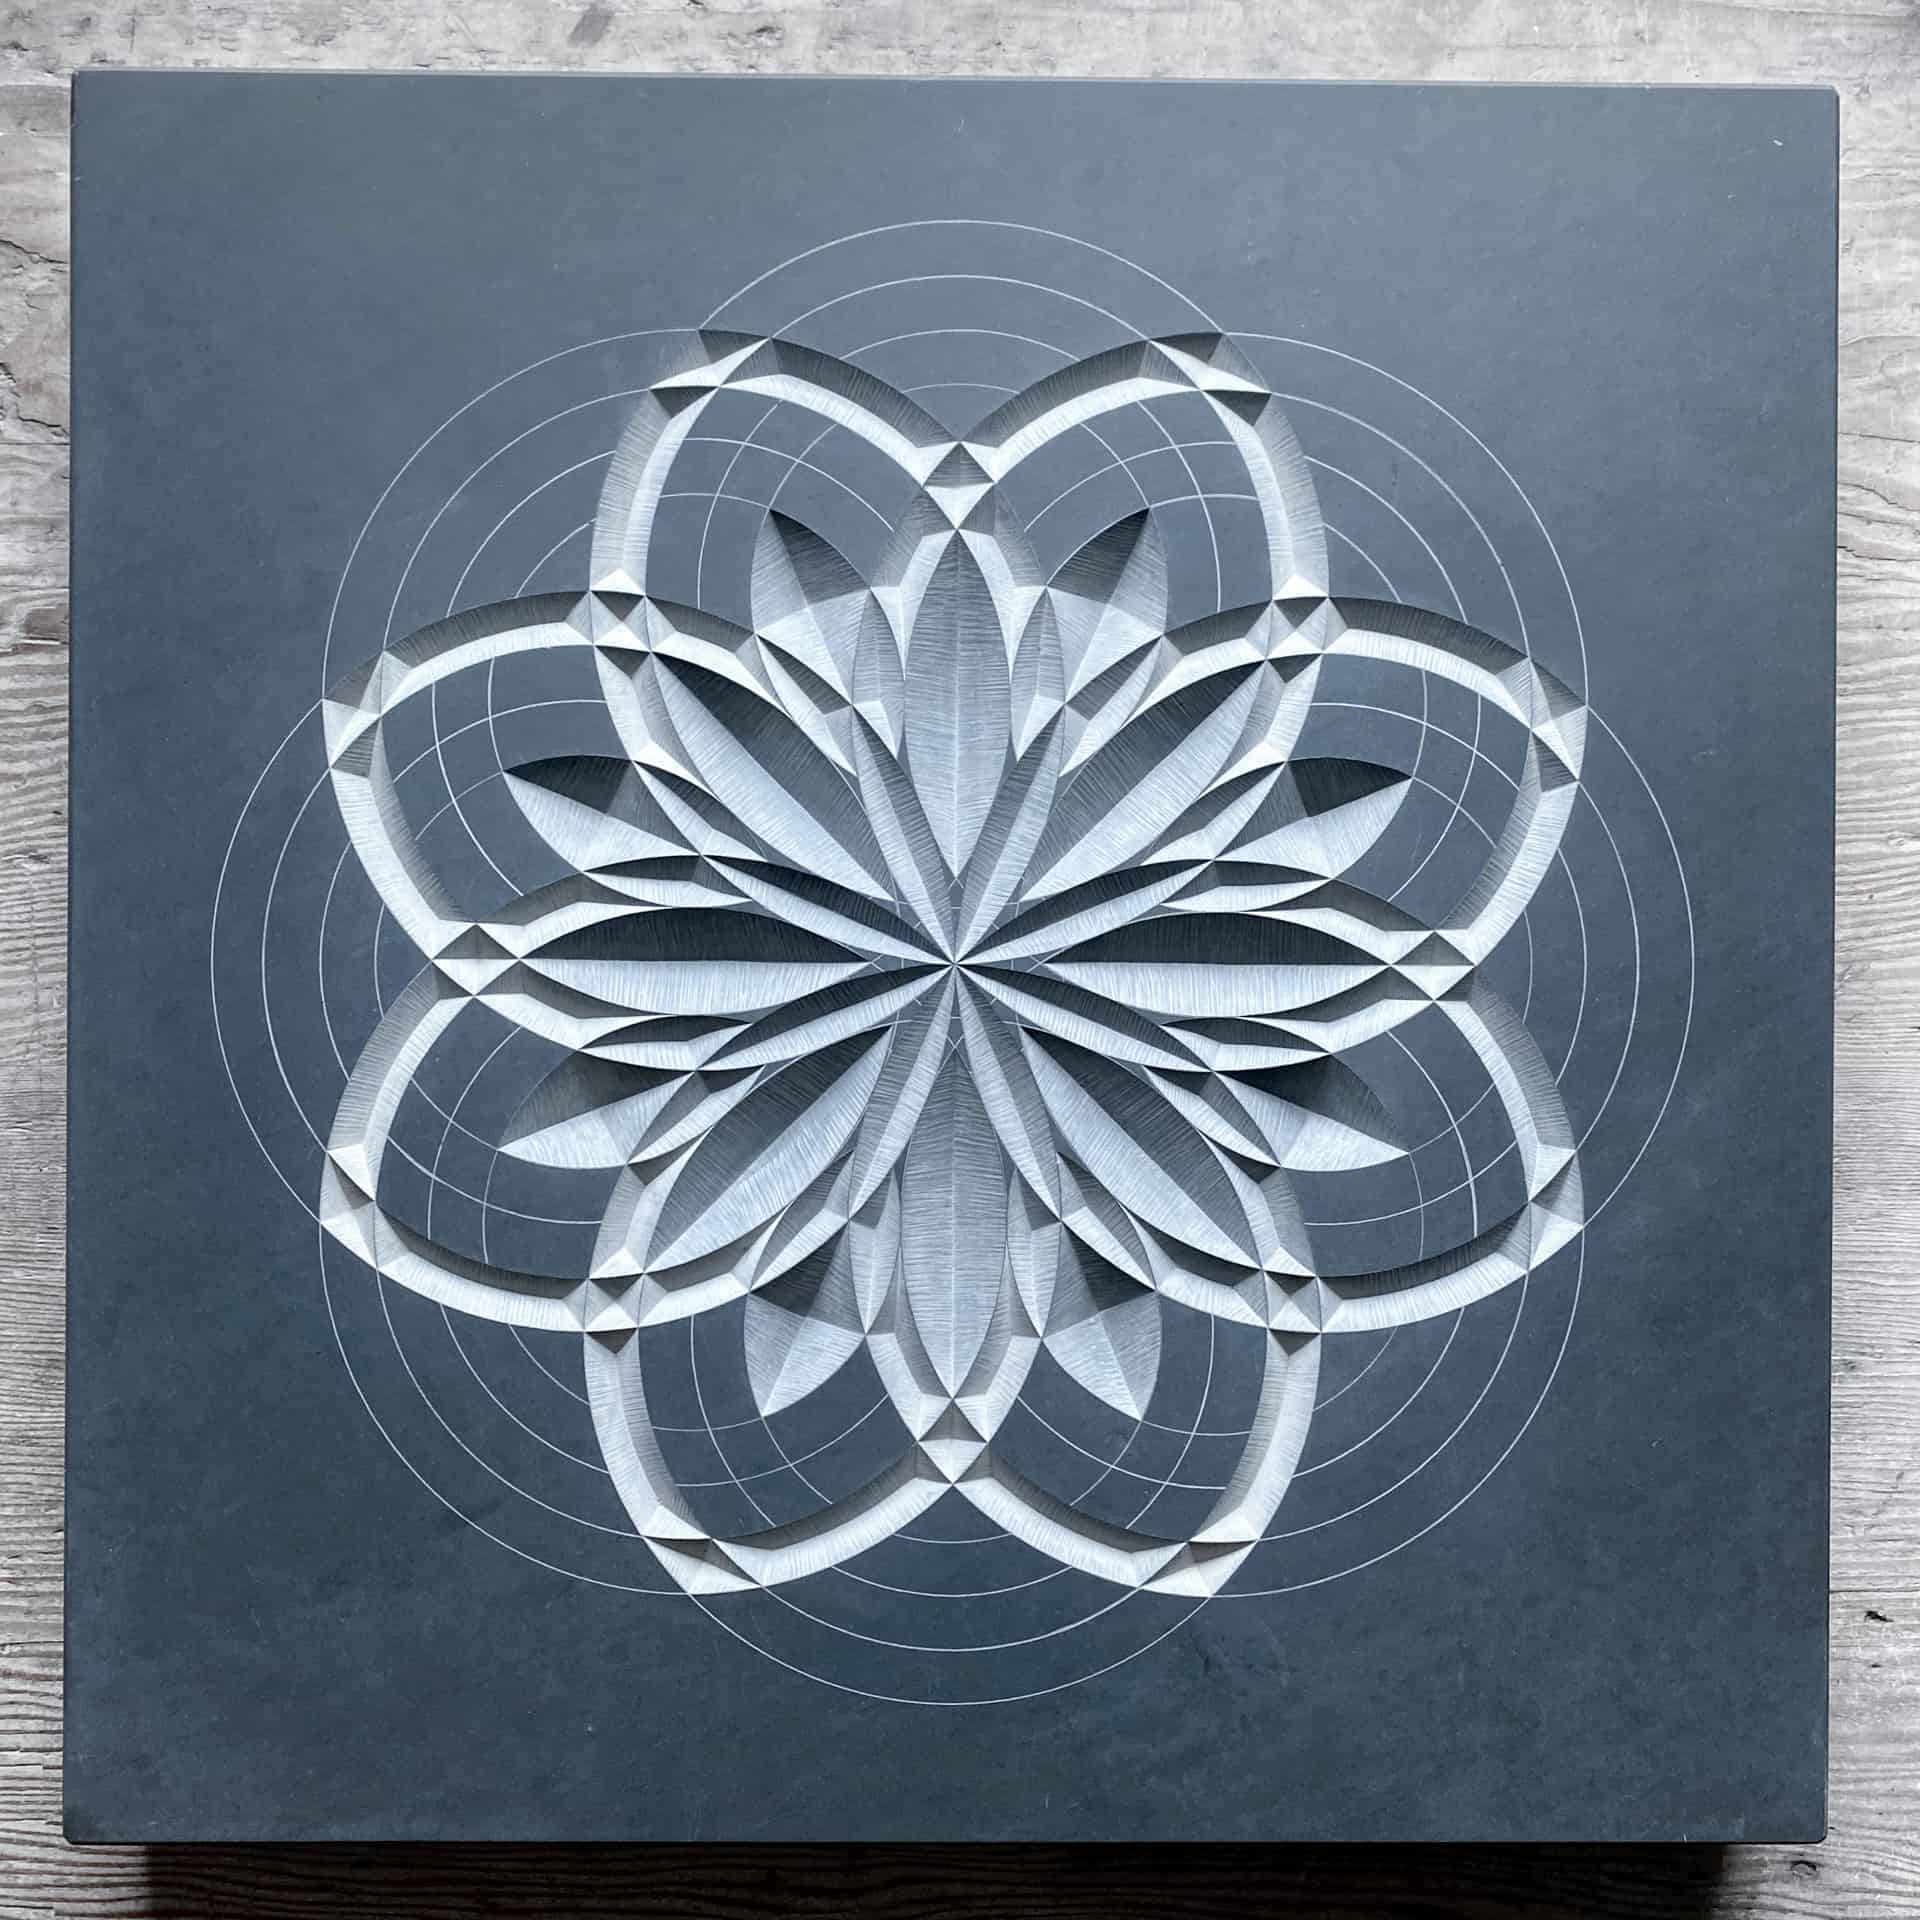 Dark grey Slate carving of a geometric pattern which looks like a flower